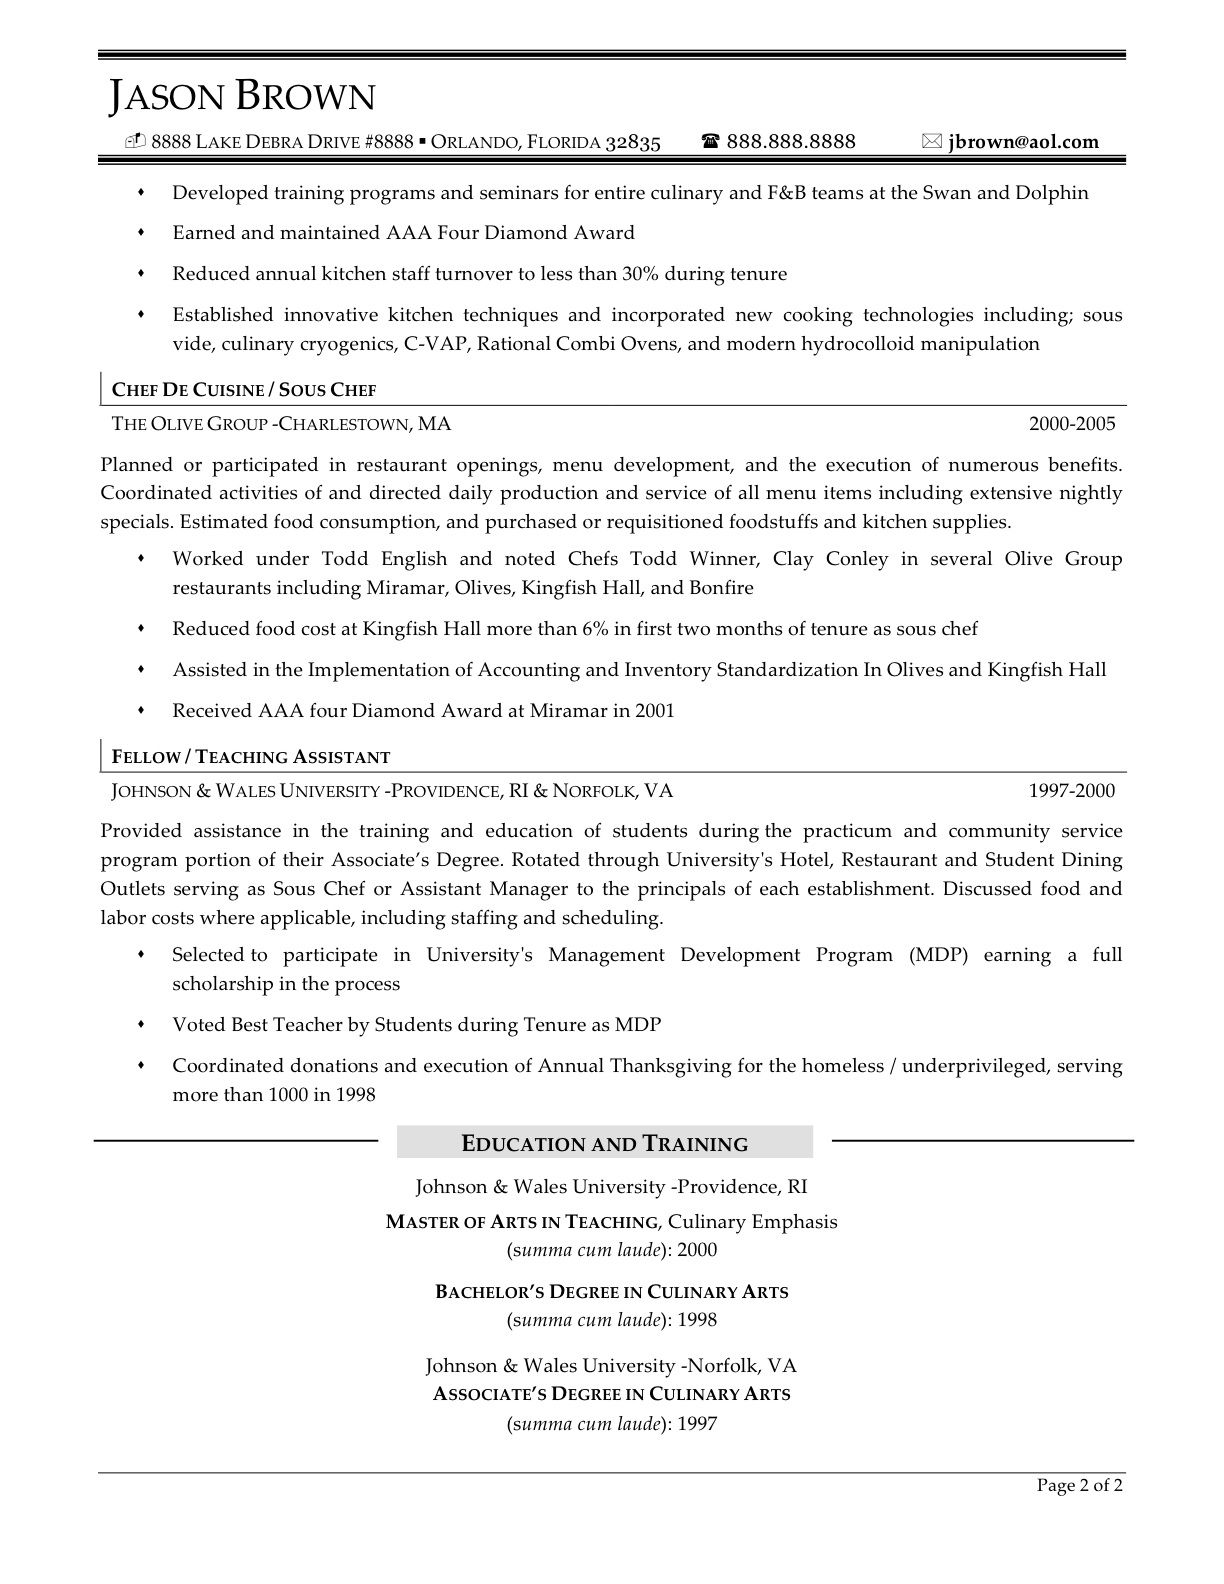 Chef Cook Resume Examples - http://www.jobresume.website/chef-cook ...